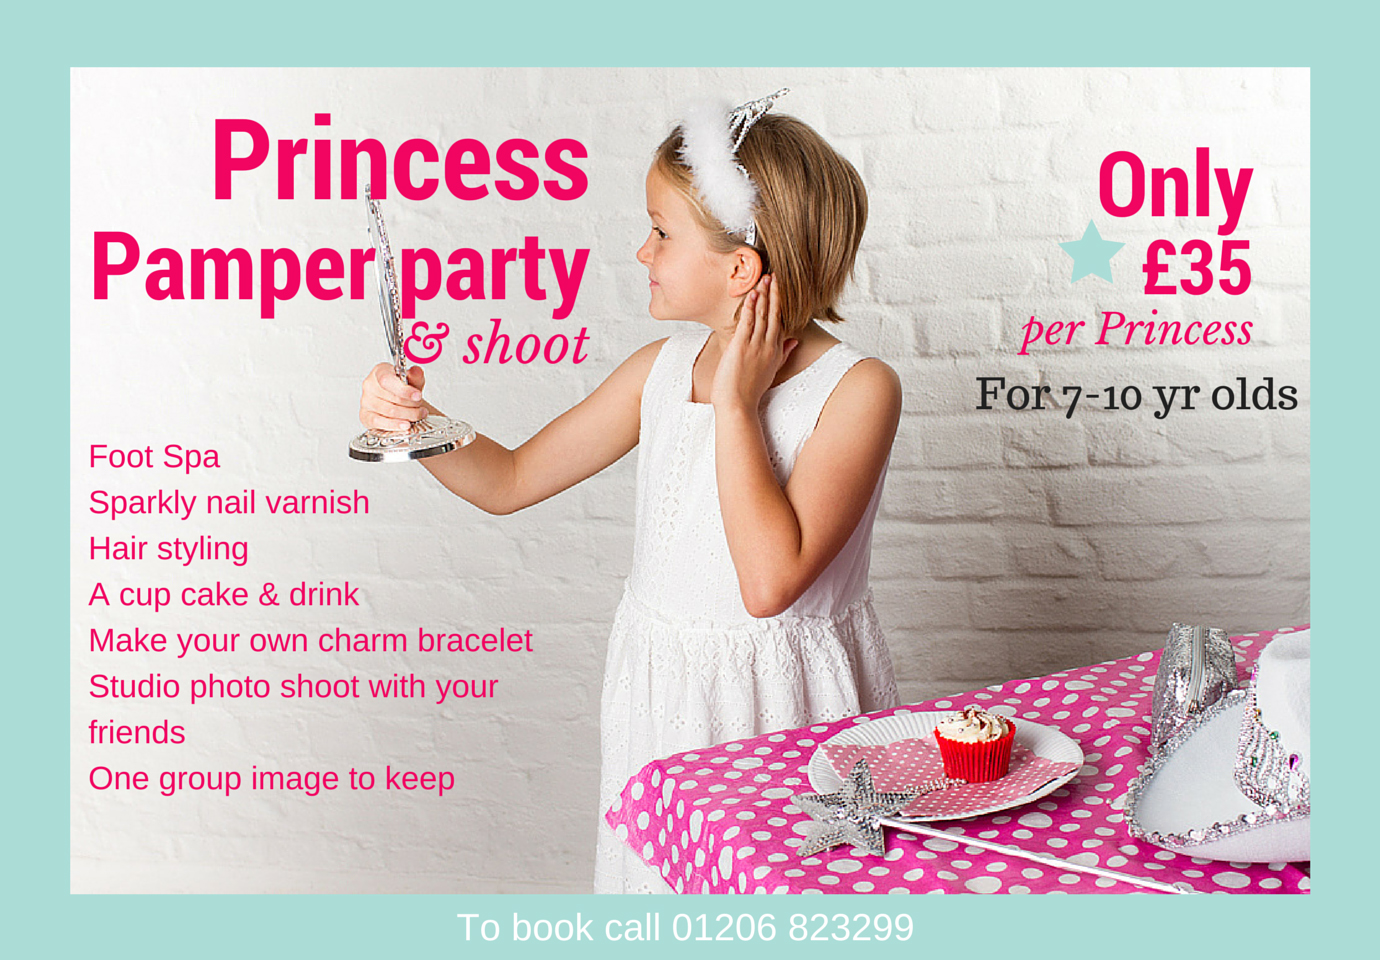 PrincessPamper party & shoot